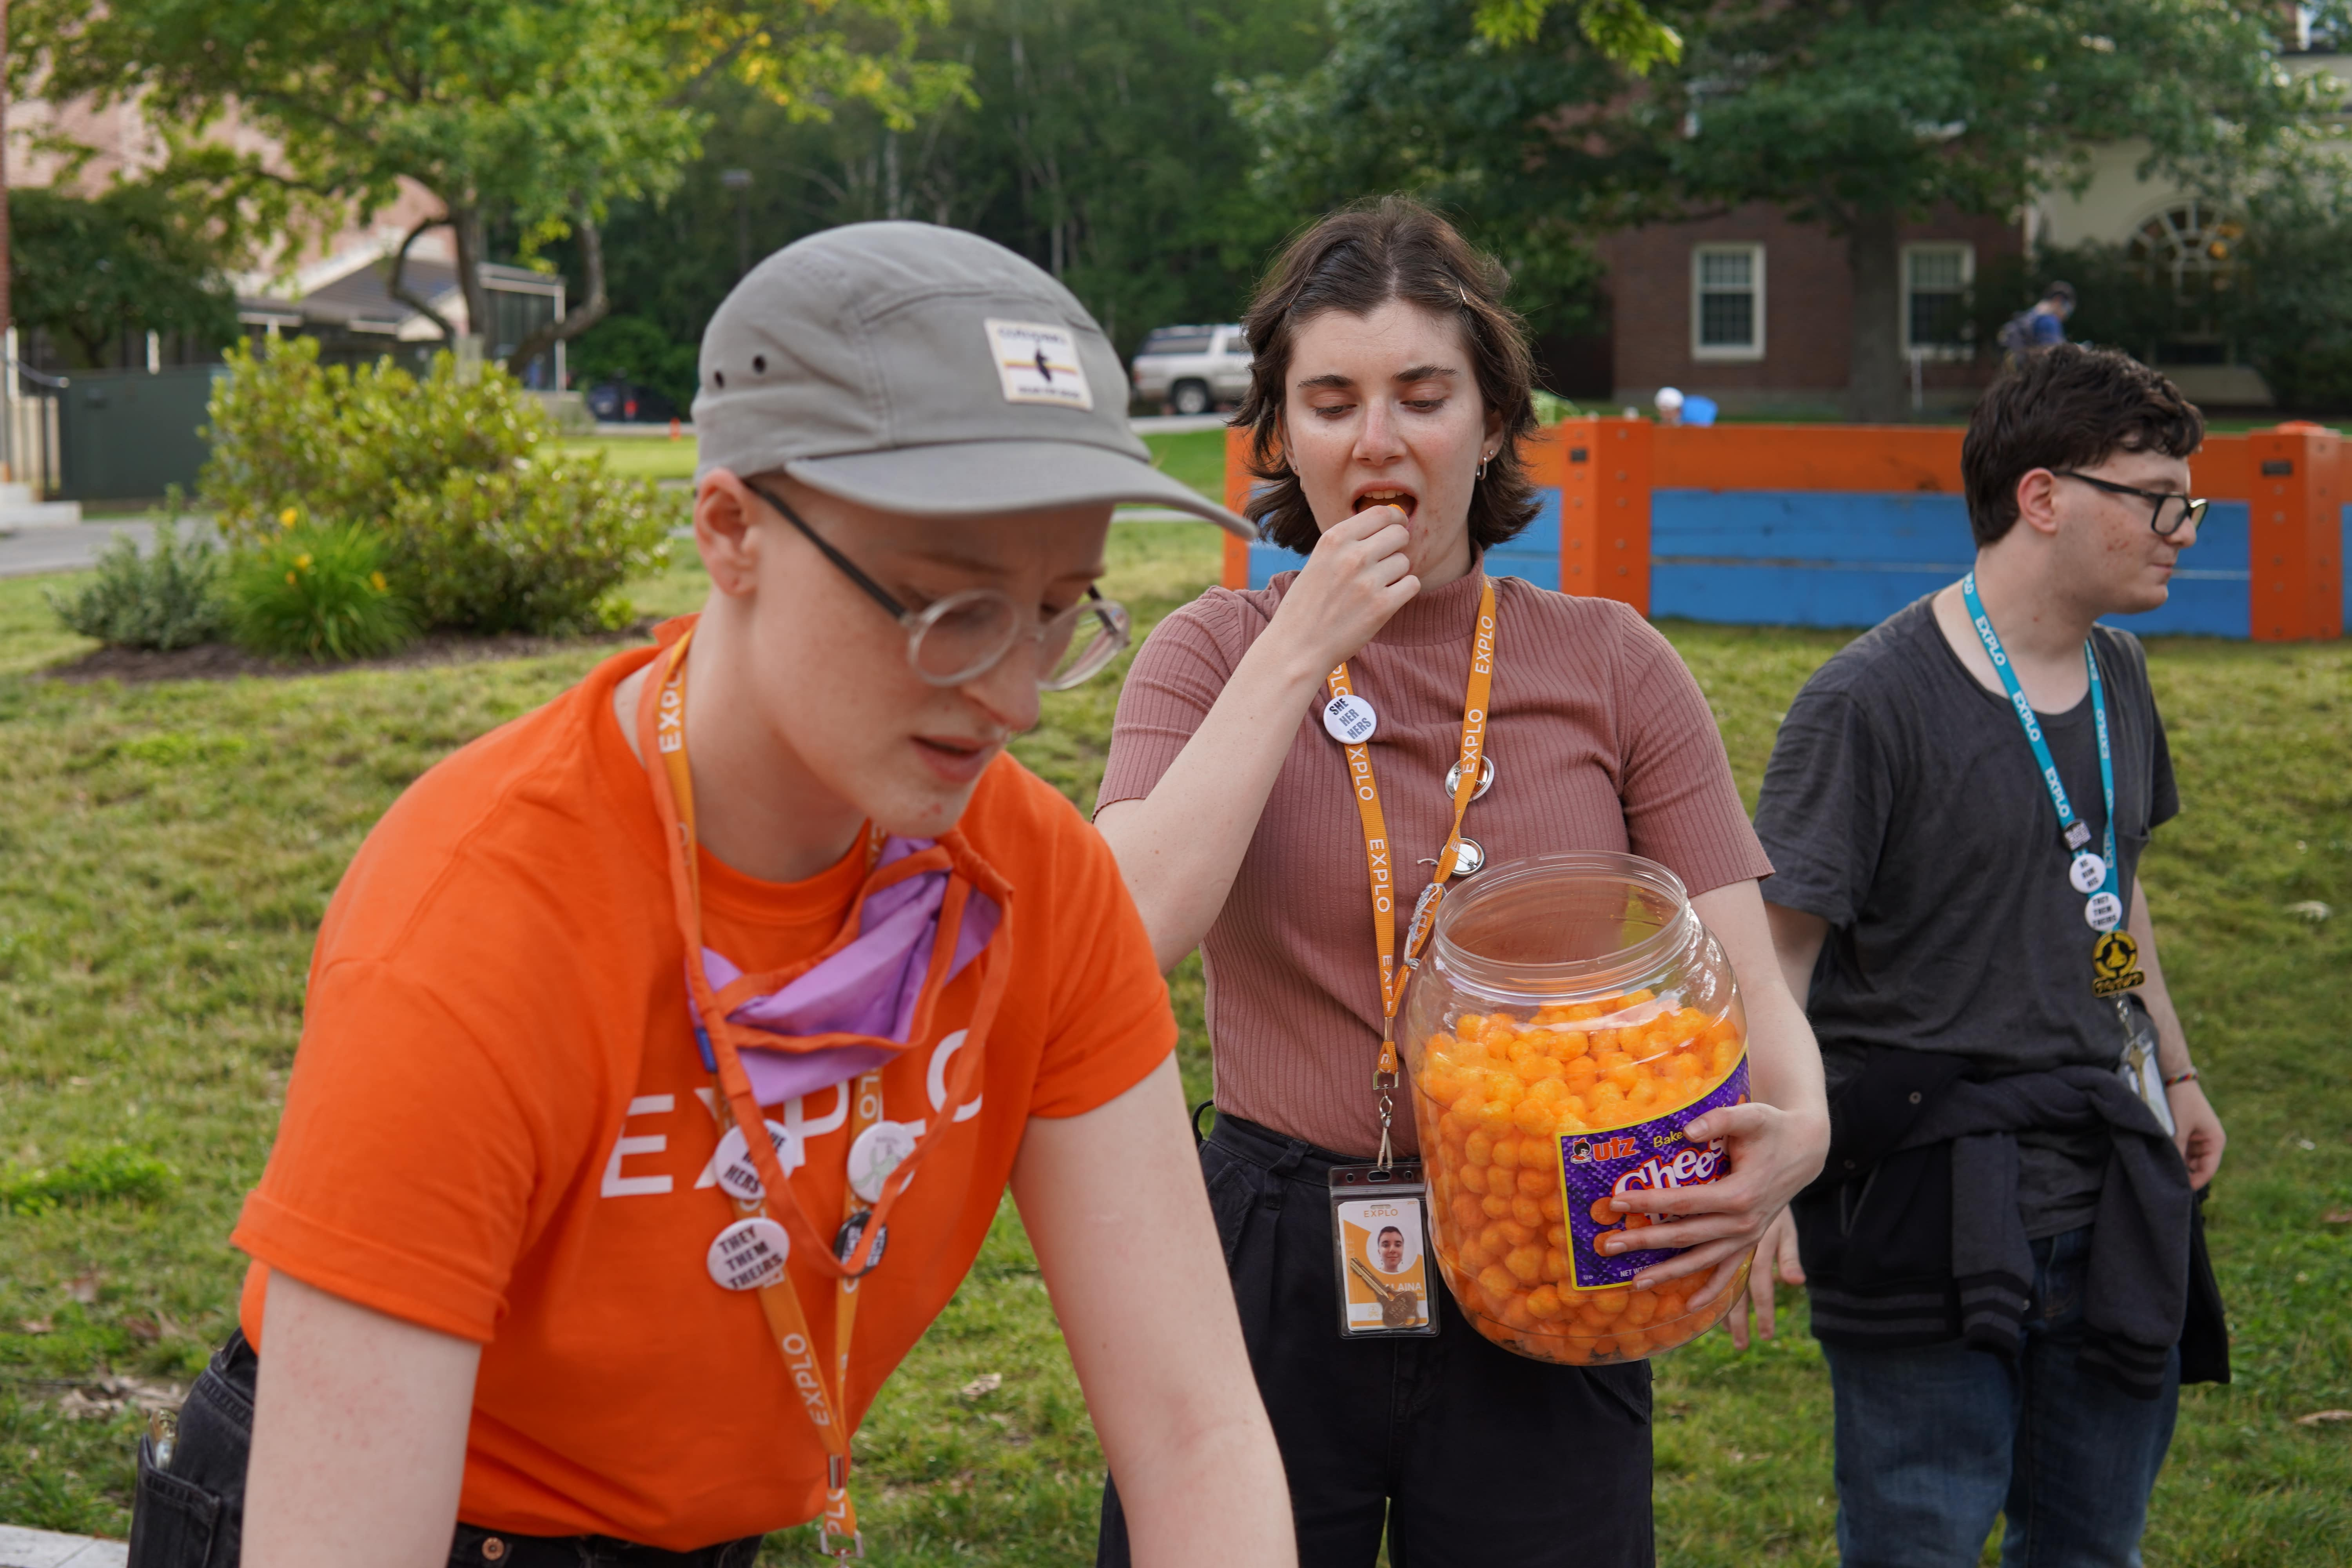 A staff member in an EXPLO shirt makes preparations for the cheeseball olympics as another one behind her snacks on cheeseballs.